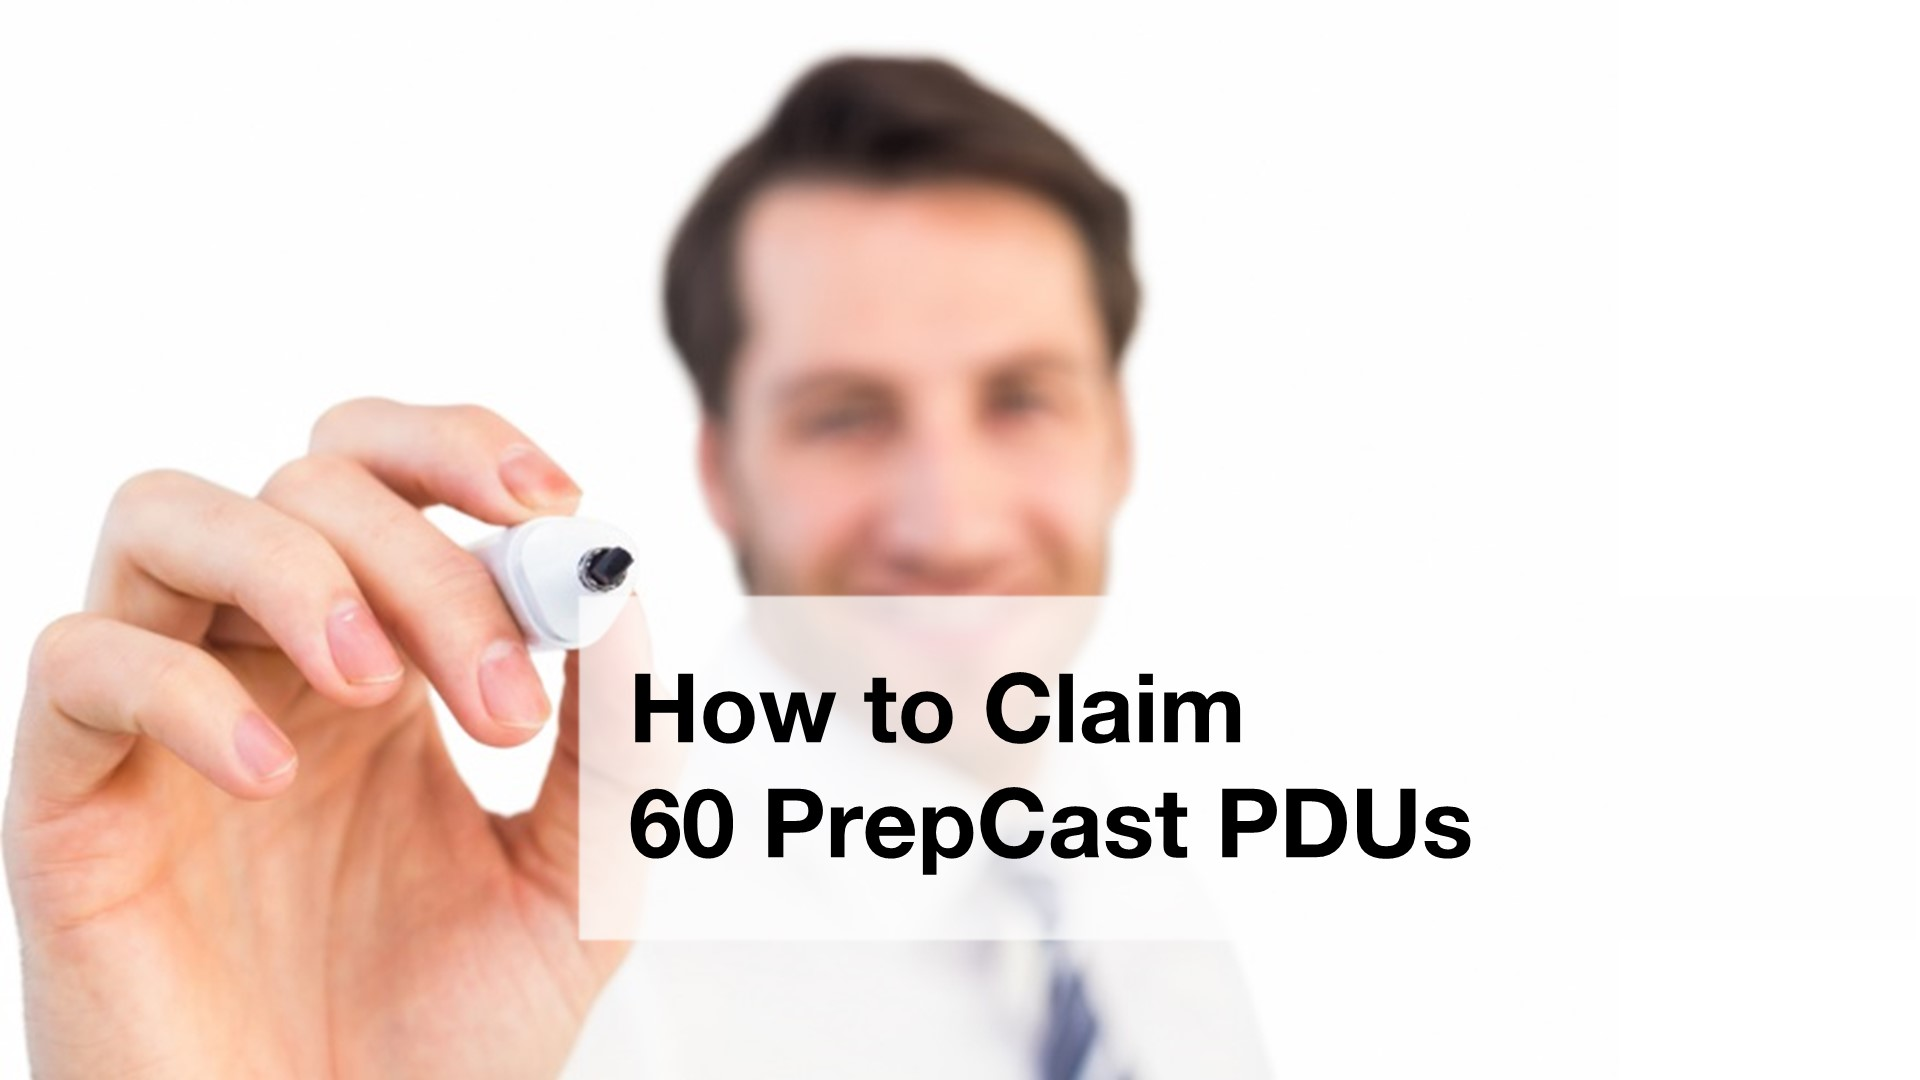 PDUs - How to Claim 60 PrepCast PDUs